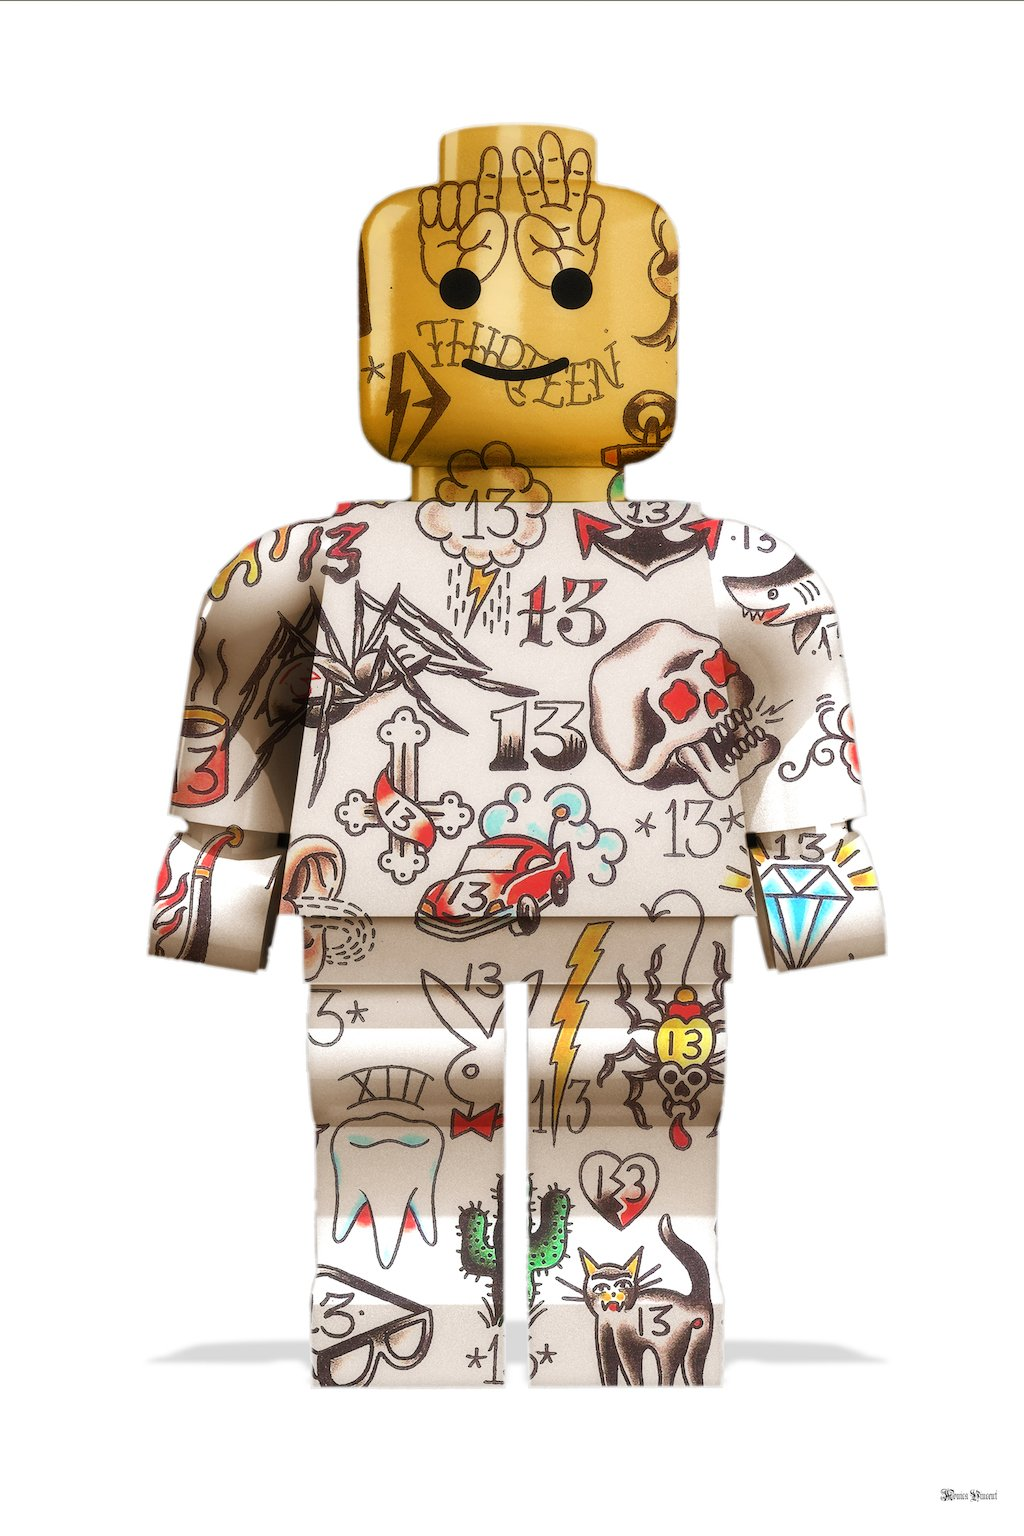 Graffiti Lego Man (White Background) - Small  by Monica Vincent